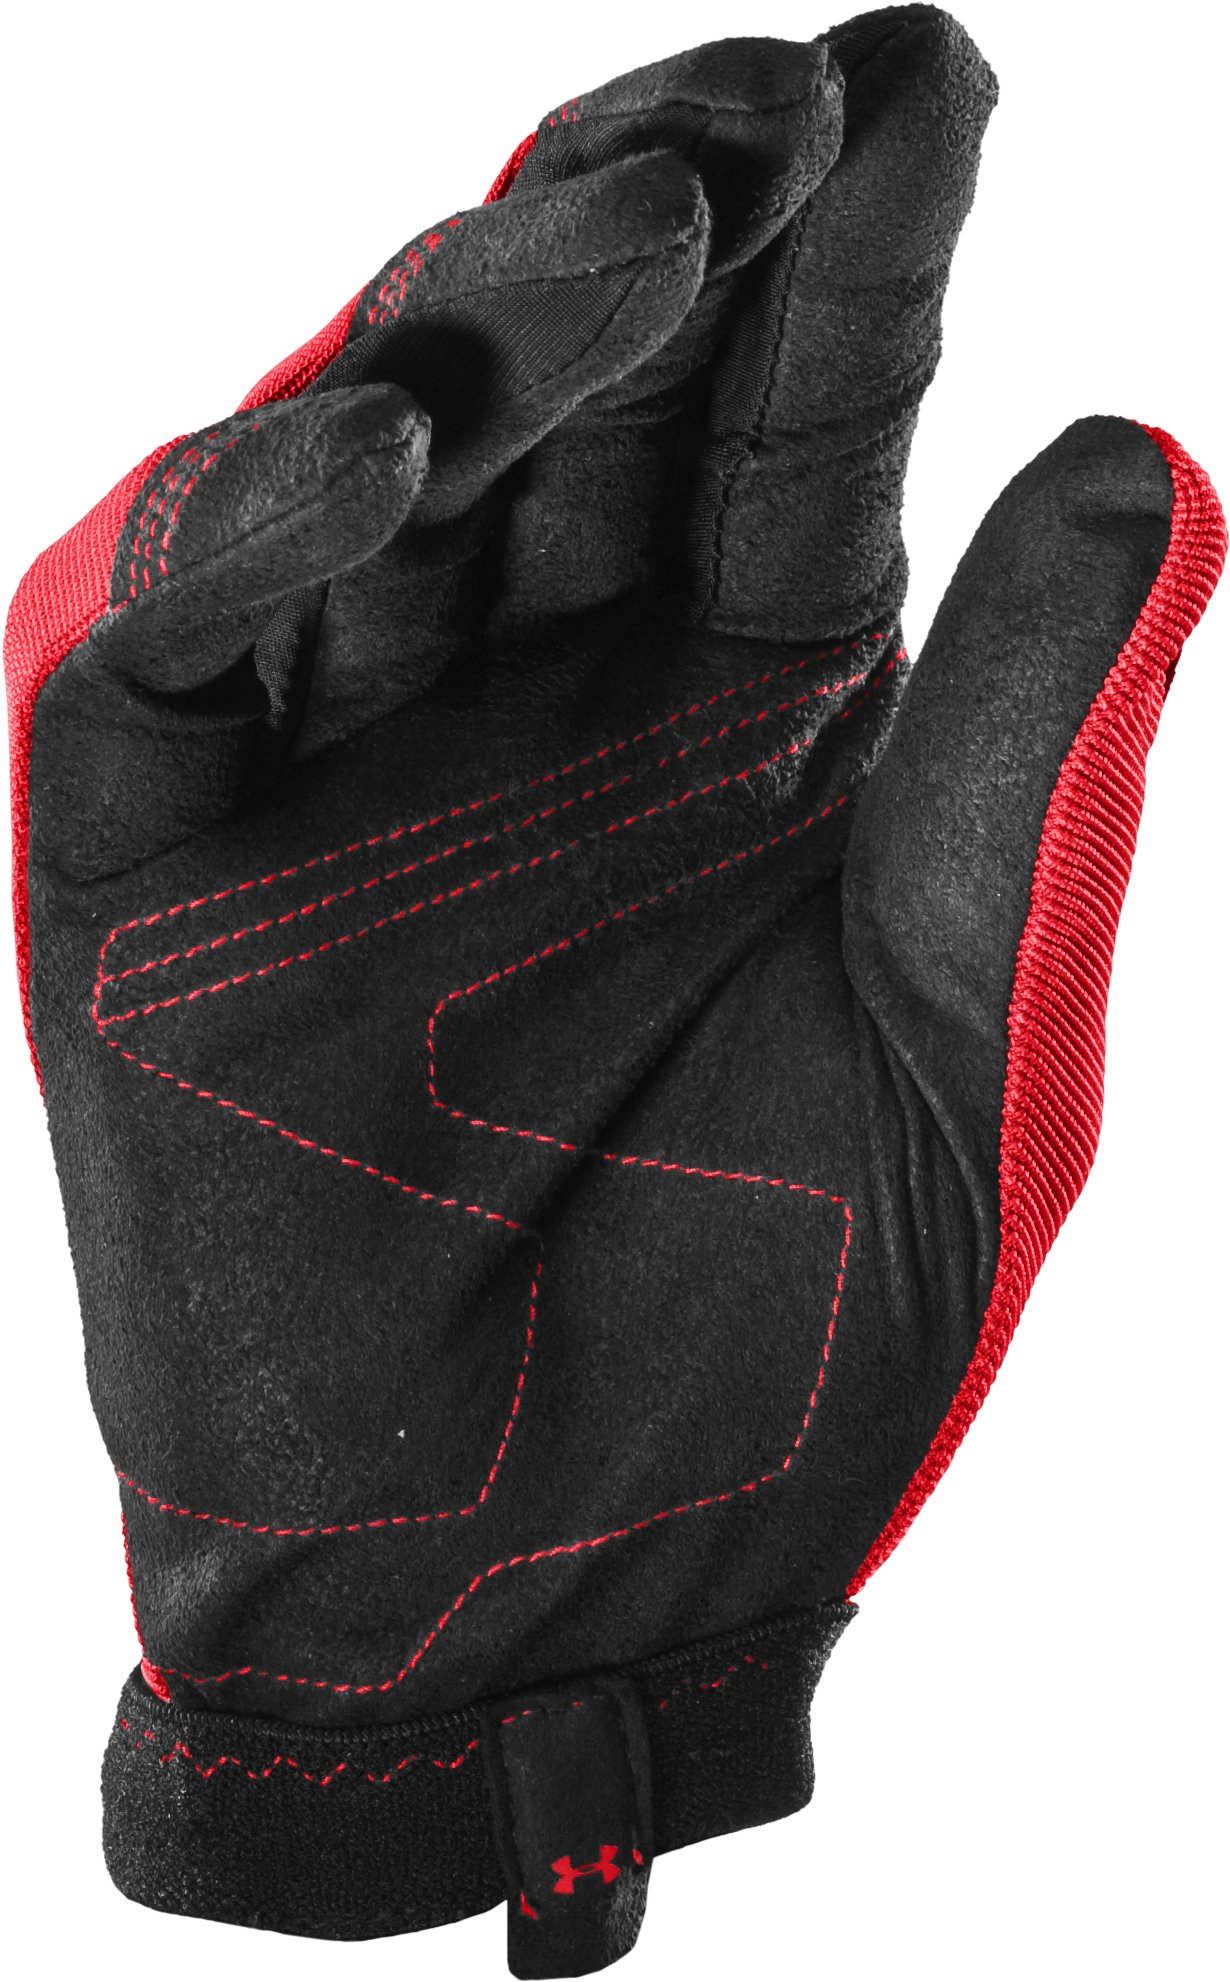 Men's Utility Gloves, University Red, undefined